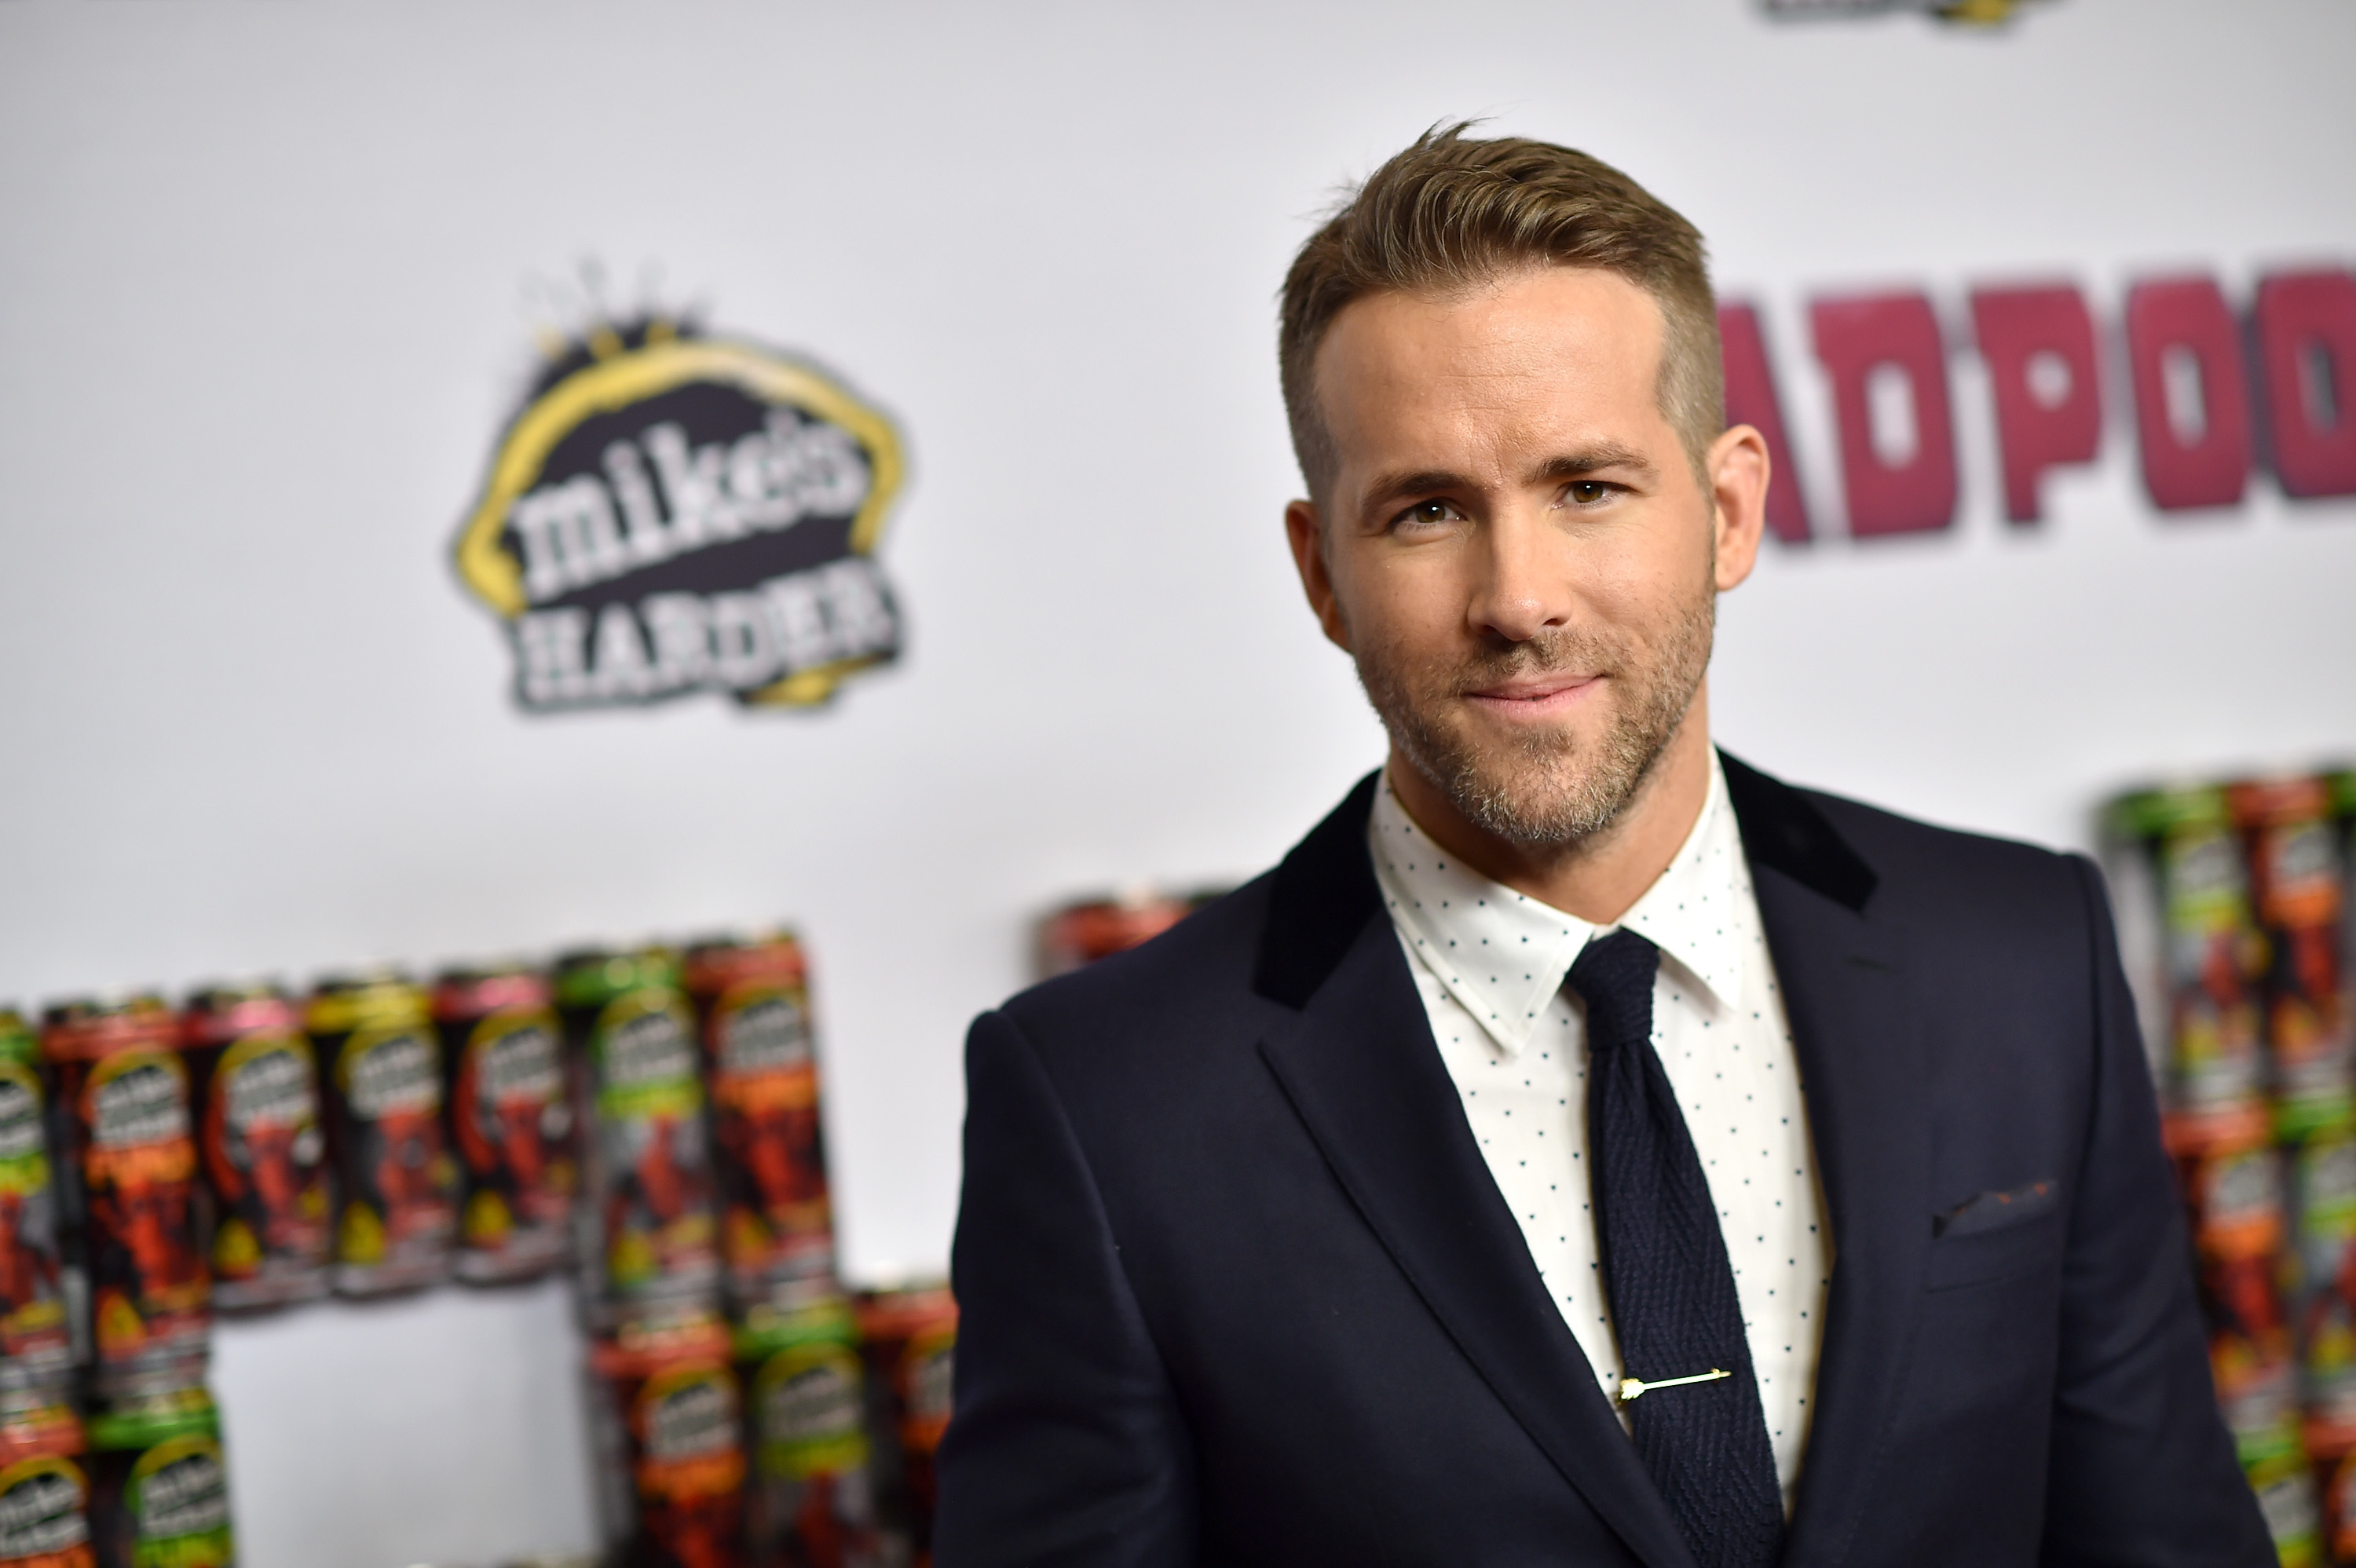 Actor Ryan Reynolds attends the 'Deadpool' fan event at AMC Empire Theatre on February 8, 2016, in New York City.